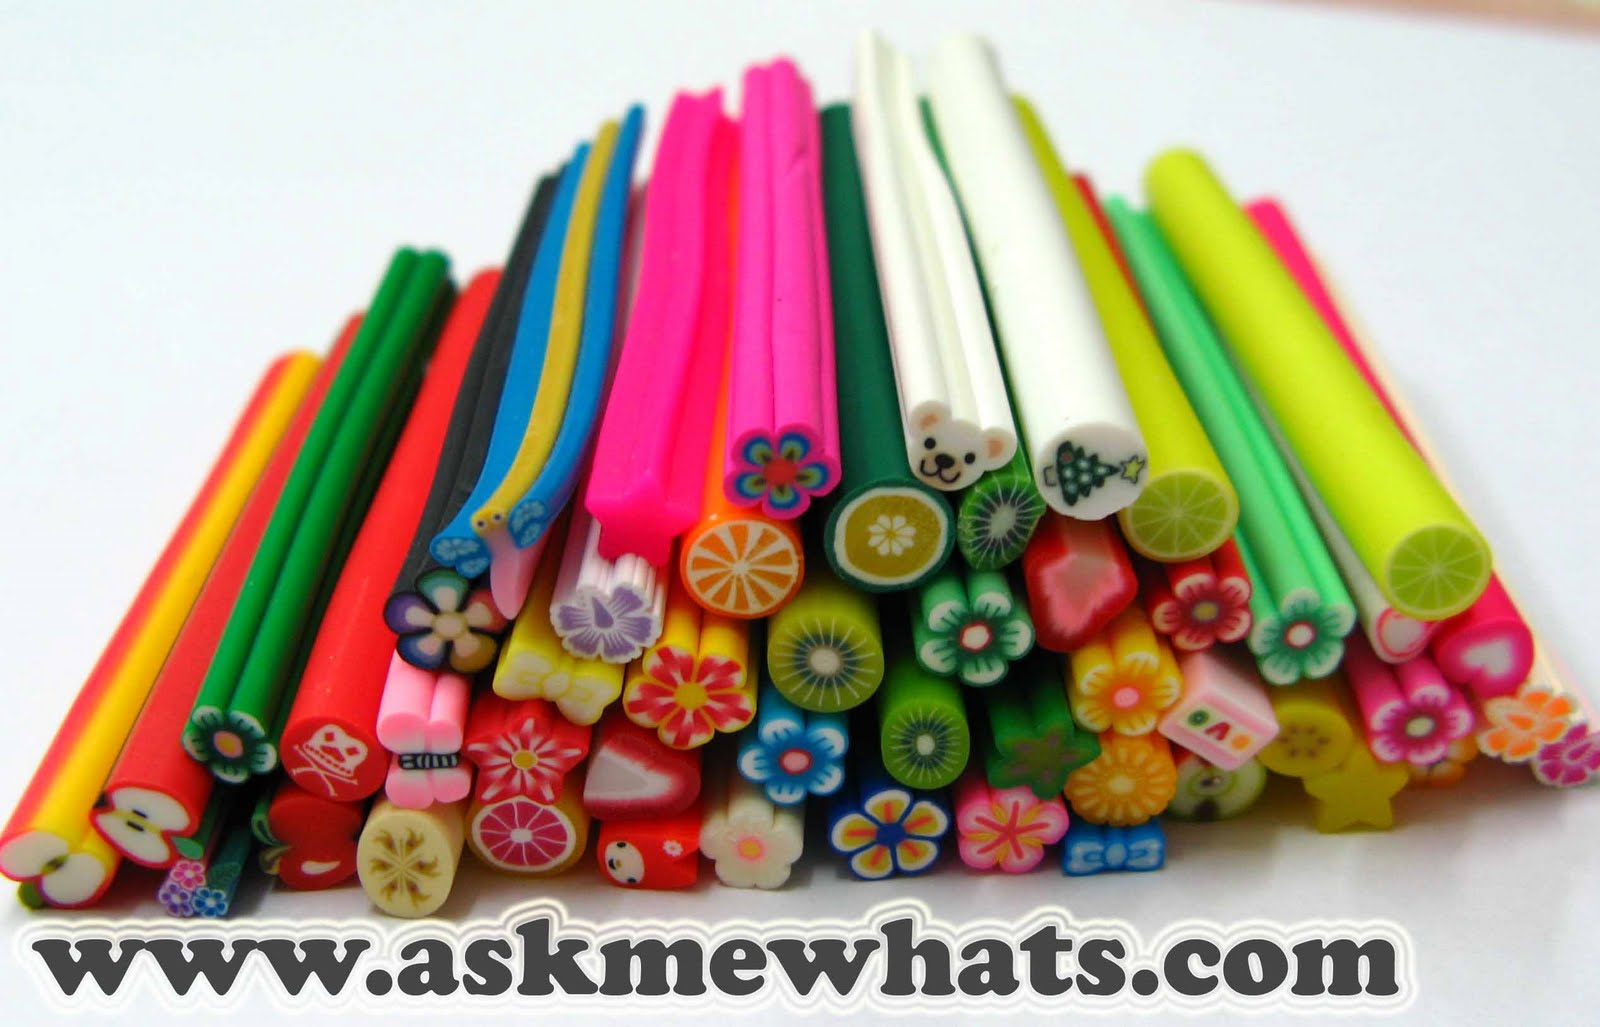 Free Fimo Polymer Clay Projects http://www.askmewhats.com/2009/11/readers-corner-fimo-polymer-clay.html